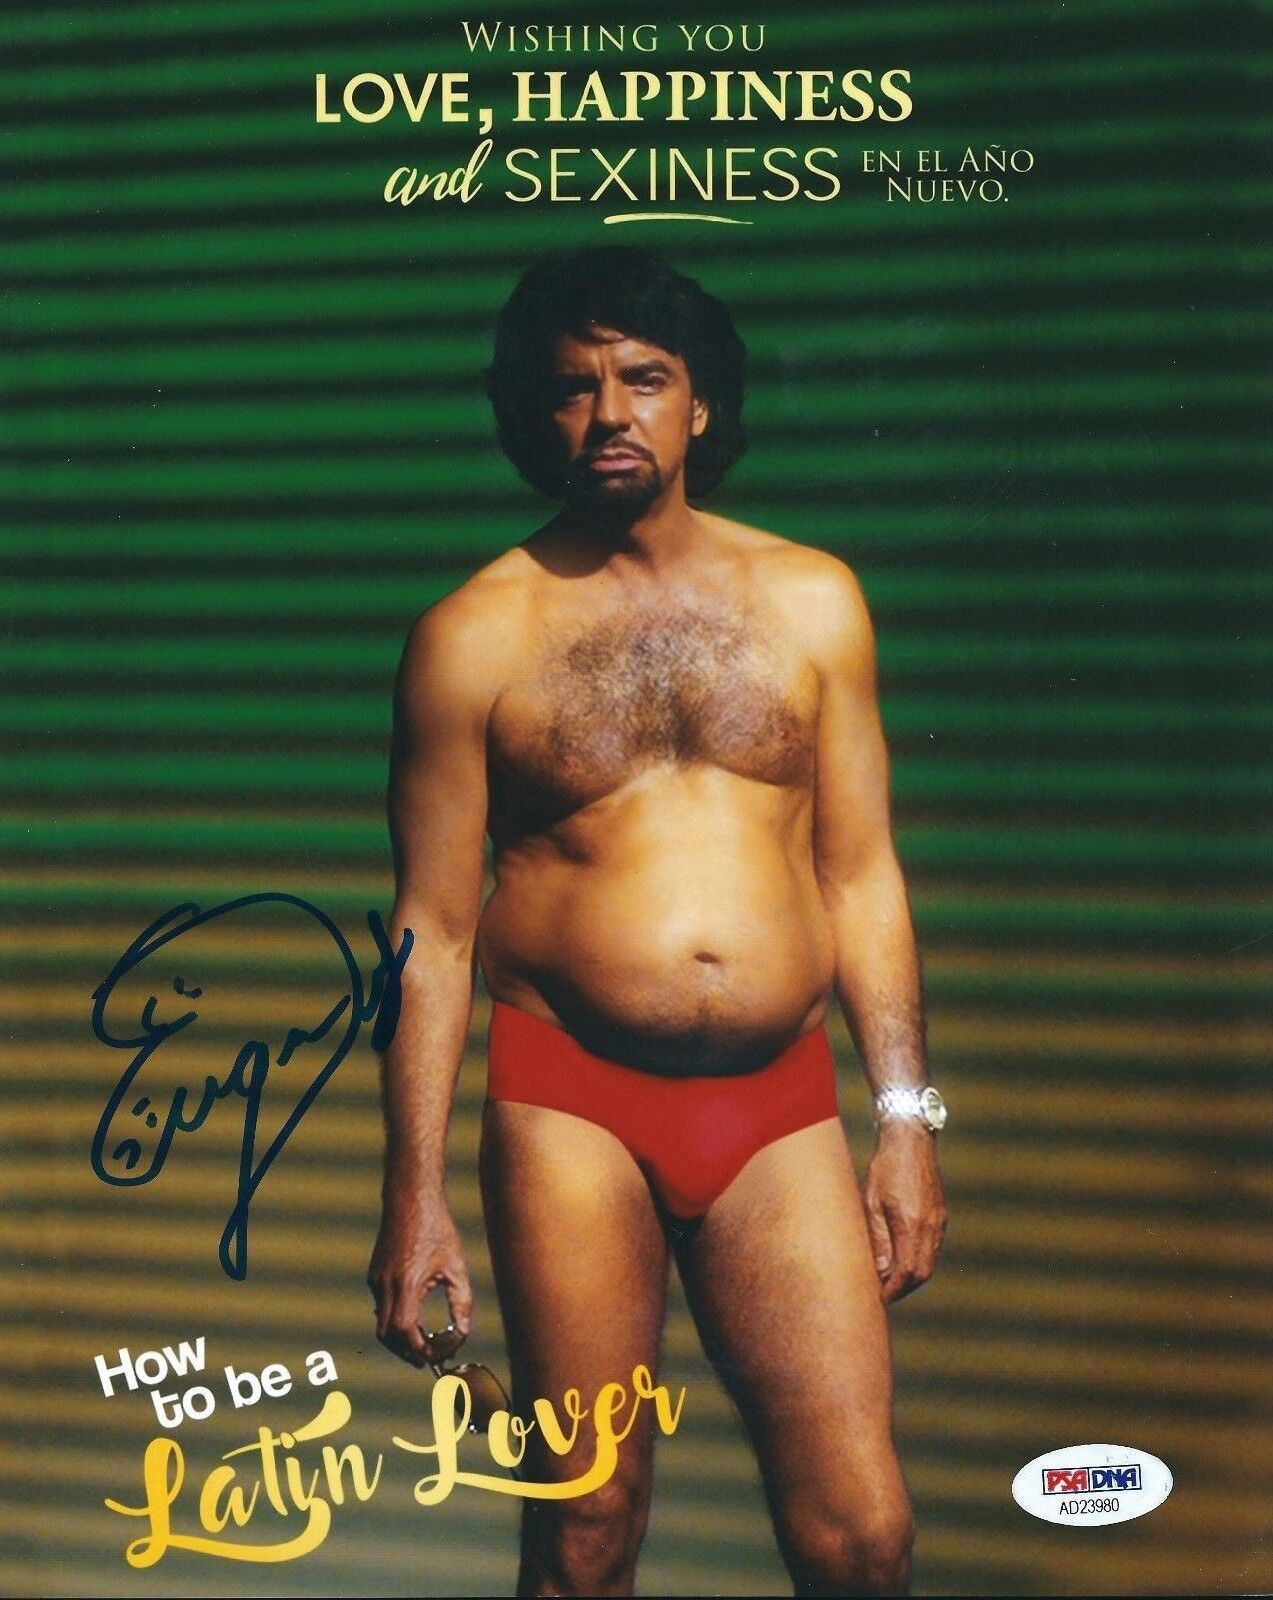 Eugenio Derbez Signed 'How To Be A Latin Lover' 8x10 Photo PSA AD23980